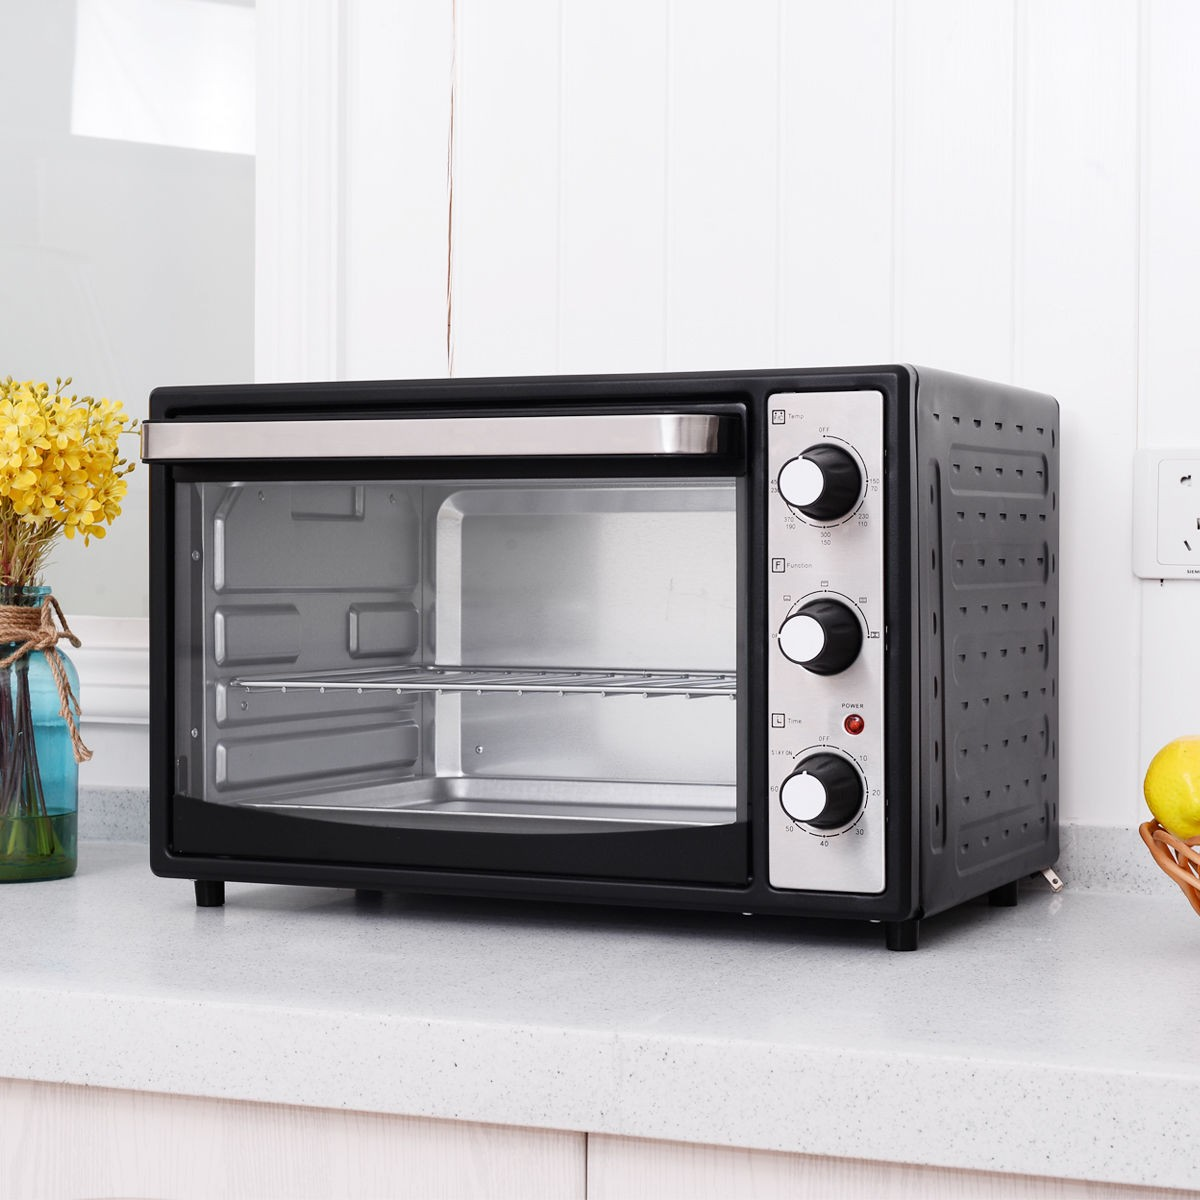 Electric Toaster Oven ~ L w electric toaster oven timer toast grill home